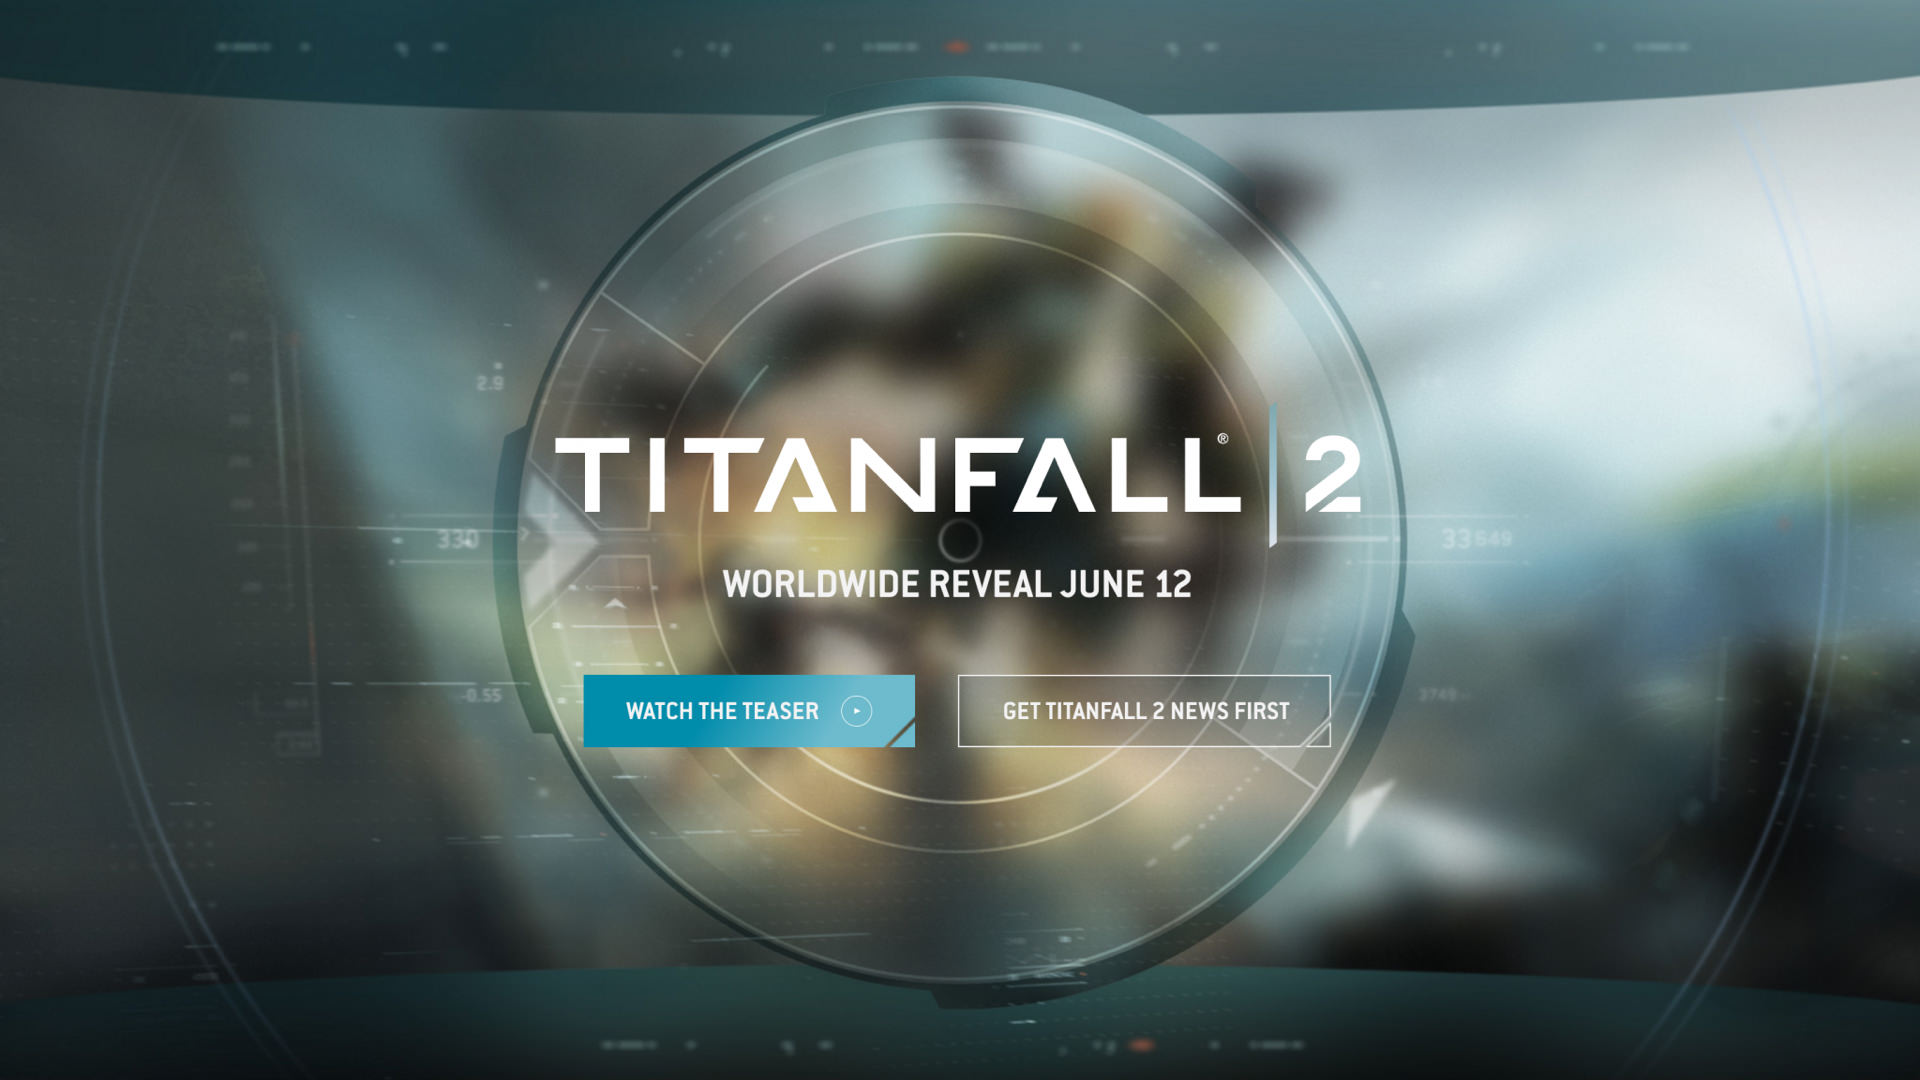 Titanfall 2's first trailer teases 'worldwide reveal' this June